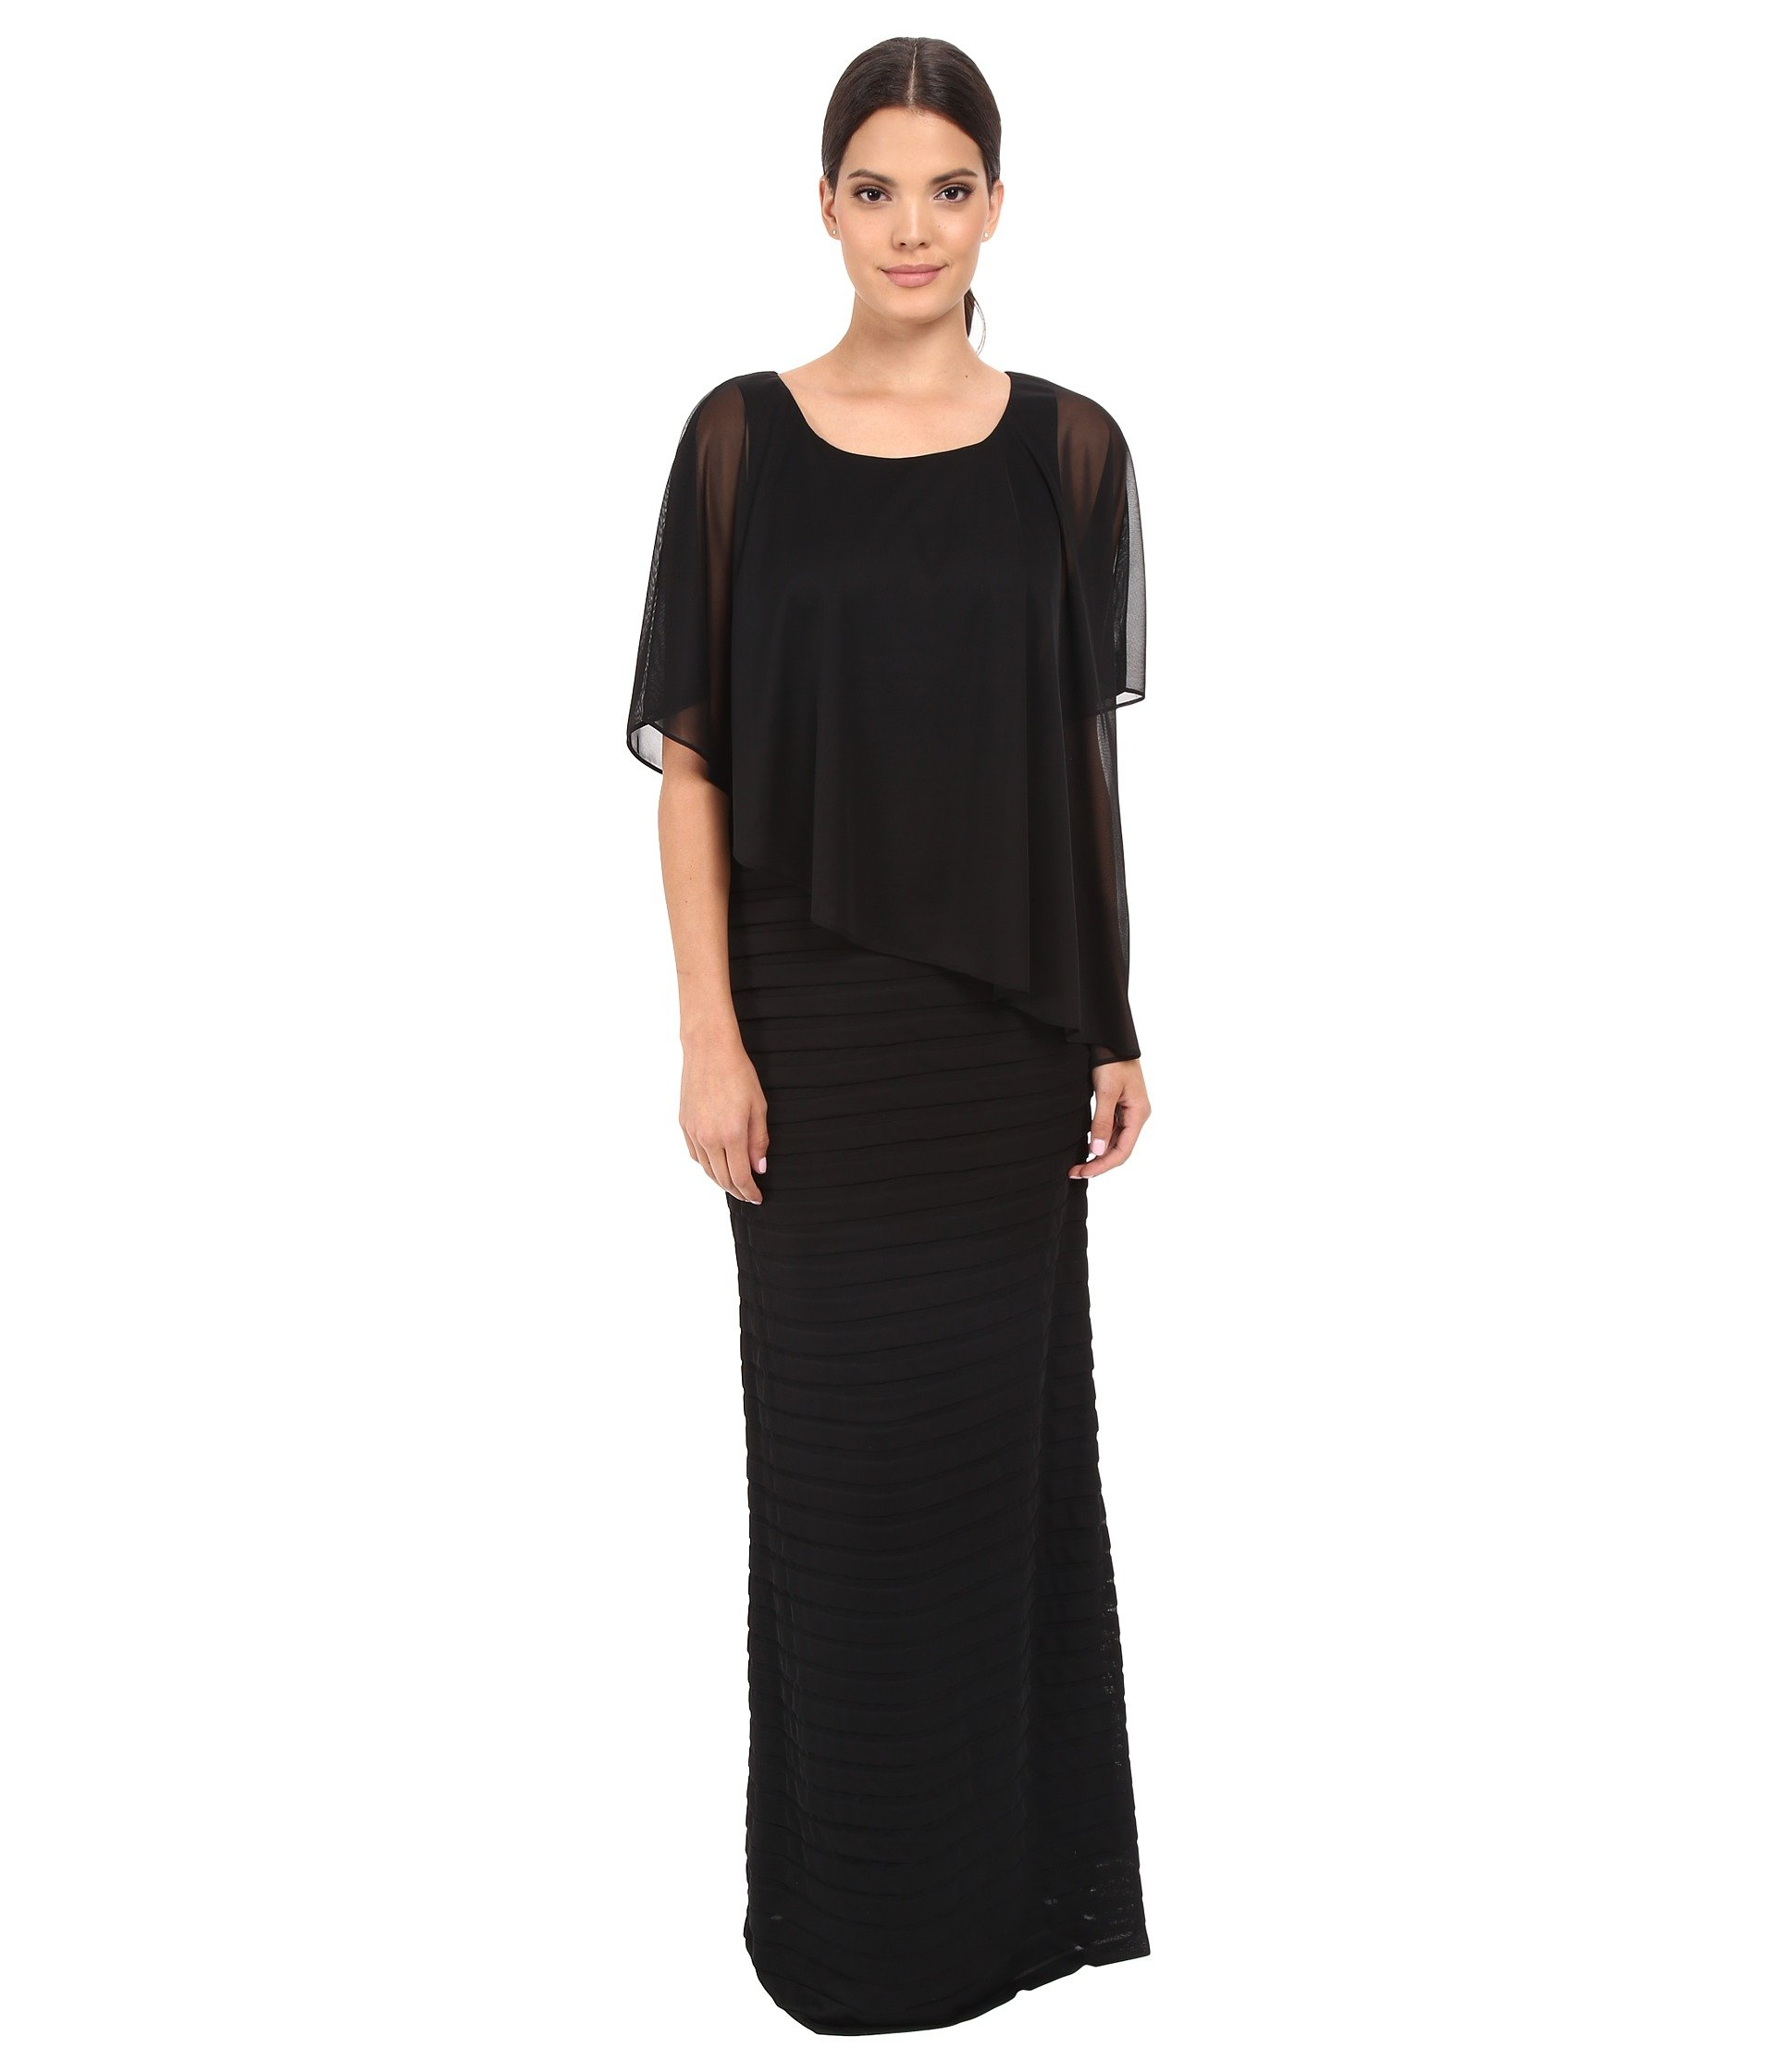 Vestido para Mujer Adrianna Papell Asymmetrical Caplet Tucked Gown  + Adrianna Papell en VeoyCompro.net